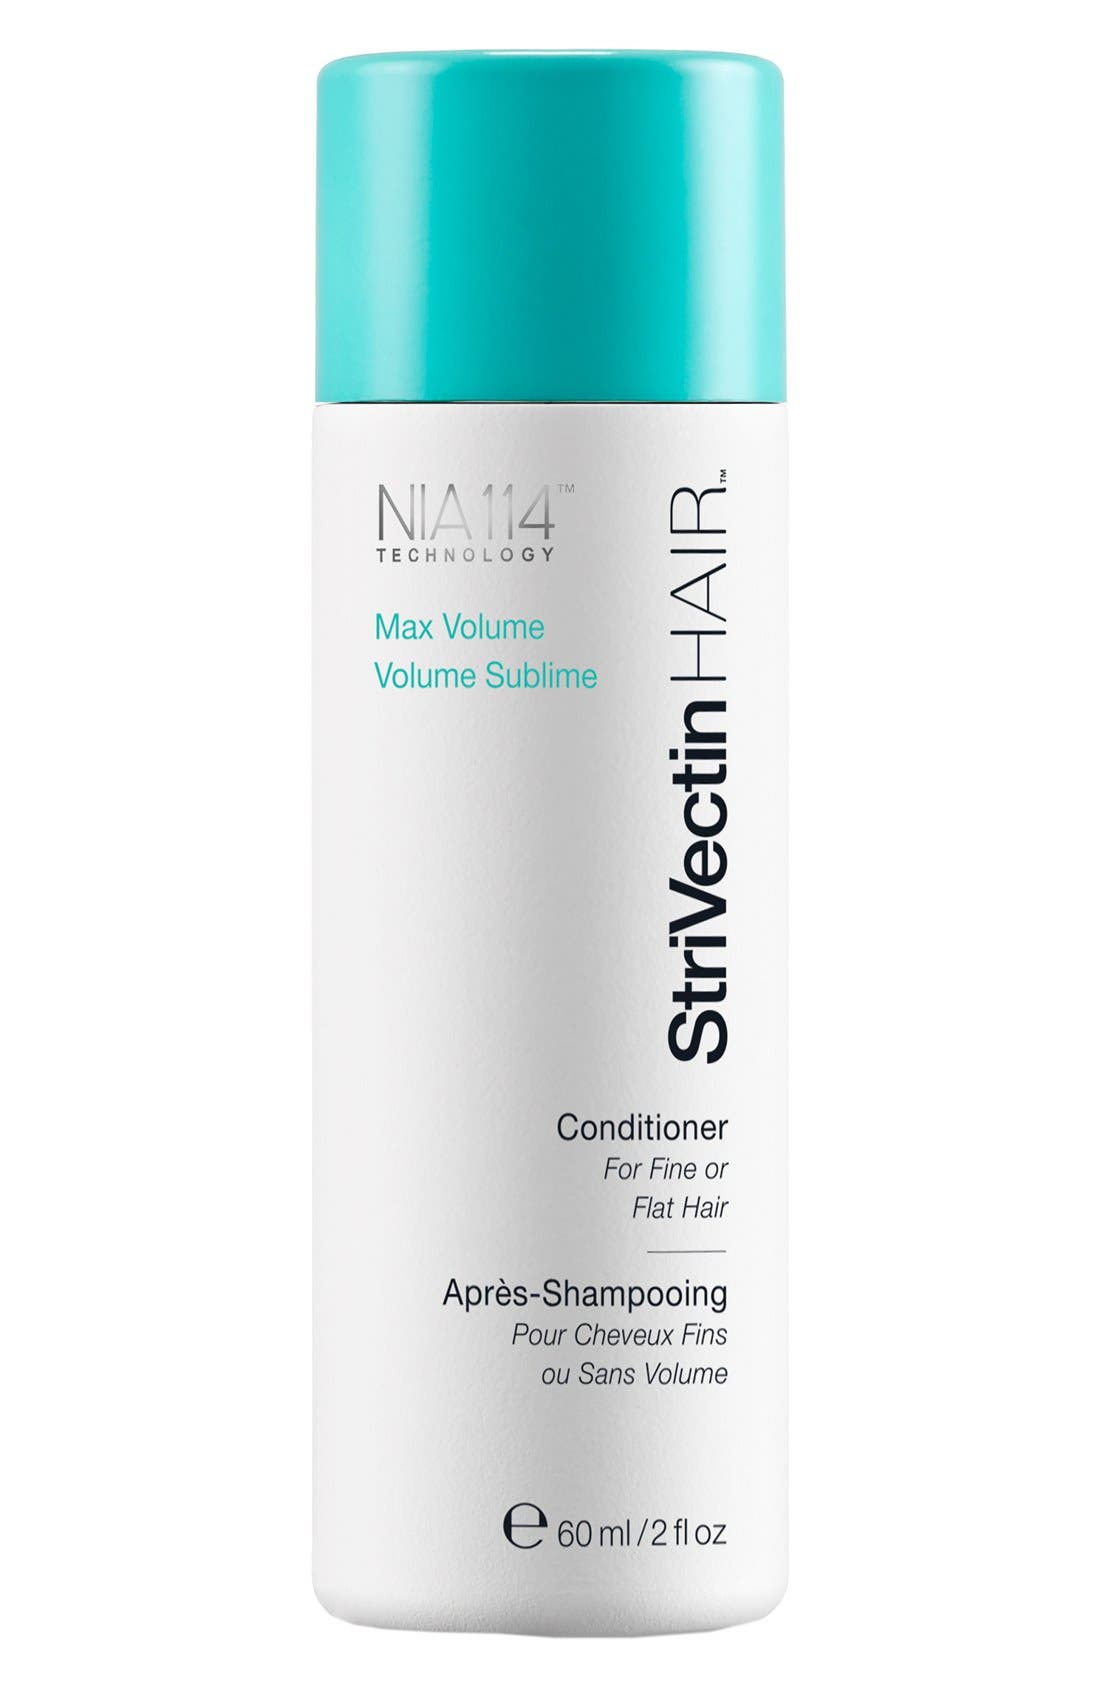 StriVectinHAIR™ 'Max Volume' Conditioner for Fine or Flat Hair